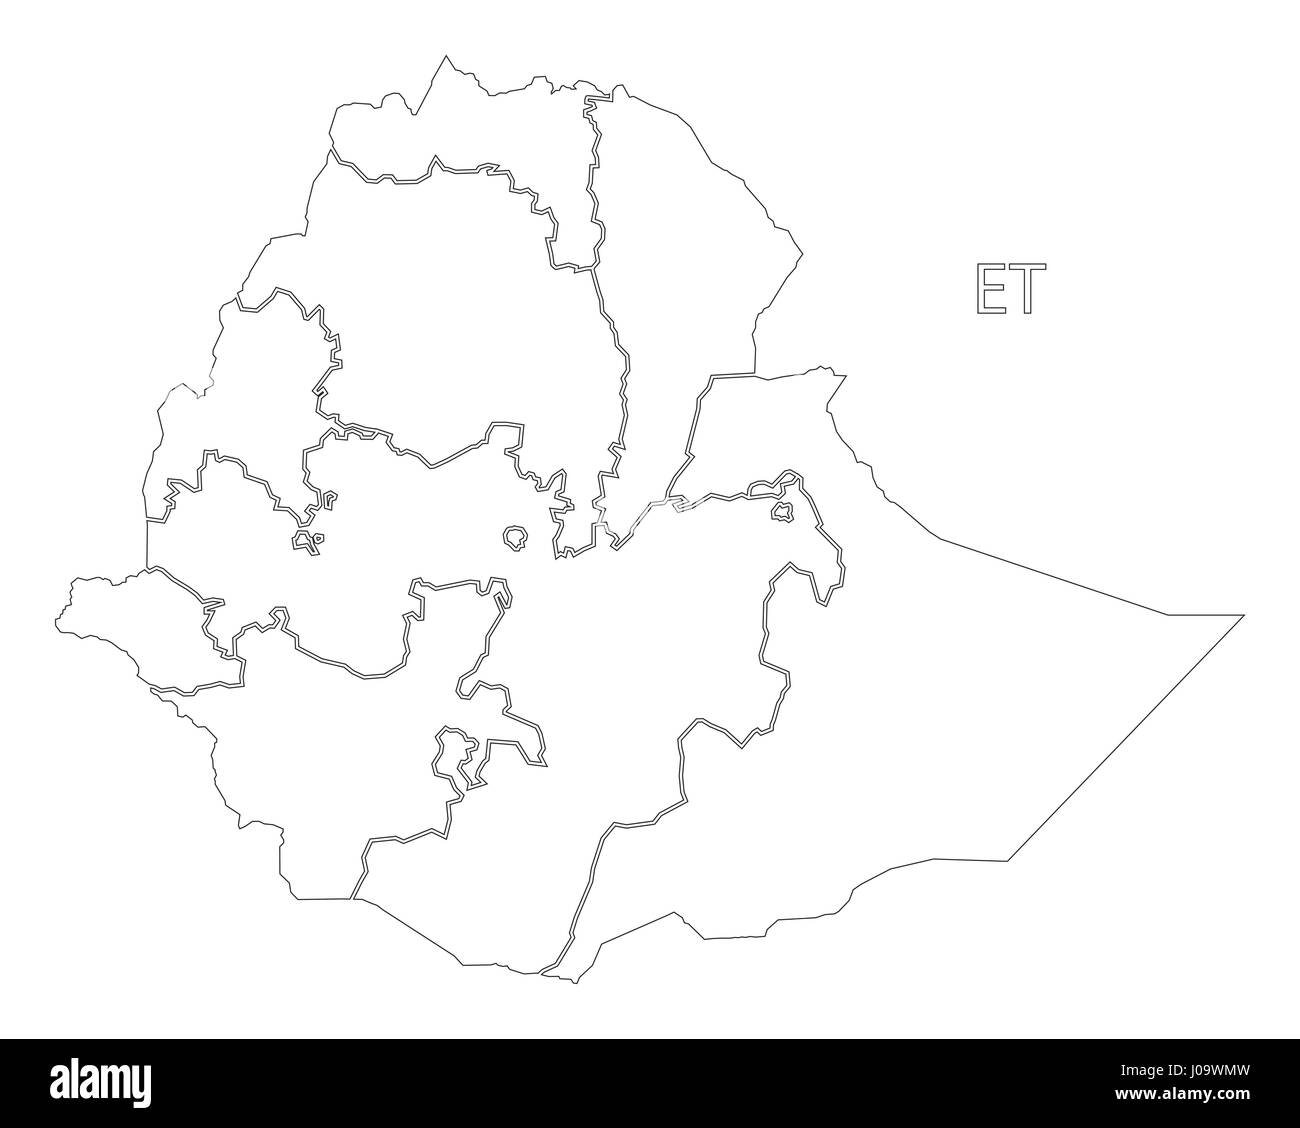 Ethiopia outline silhouette map illustration with regions